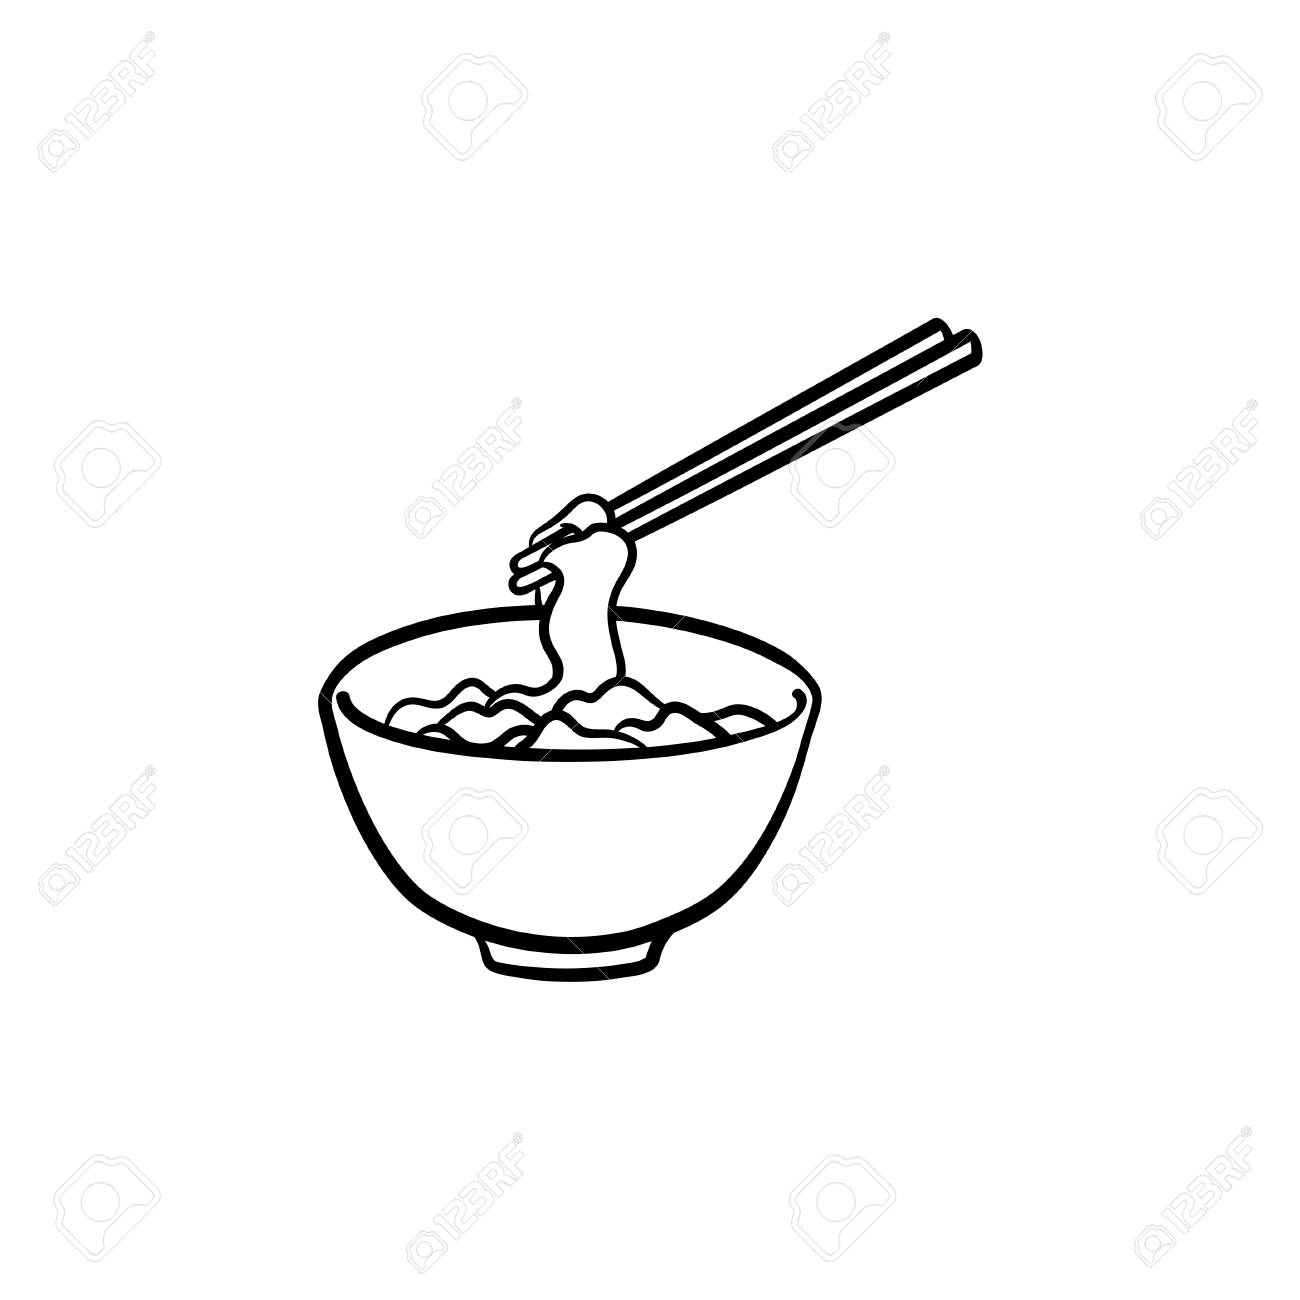 Bowl Of Noodles Hand Drawn Outline Doodle Icon Noodle Soup Vector Royalty Free Cliparts Vectors And Stock Illustration Image 100016405